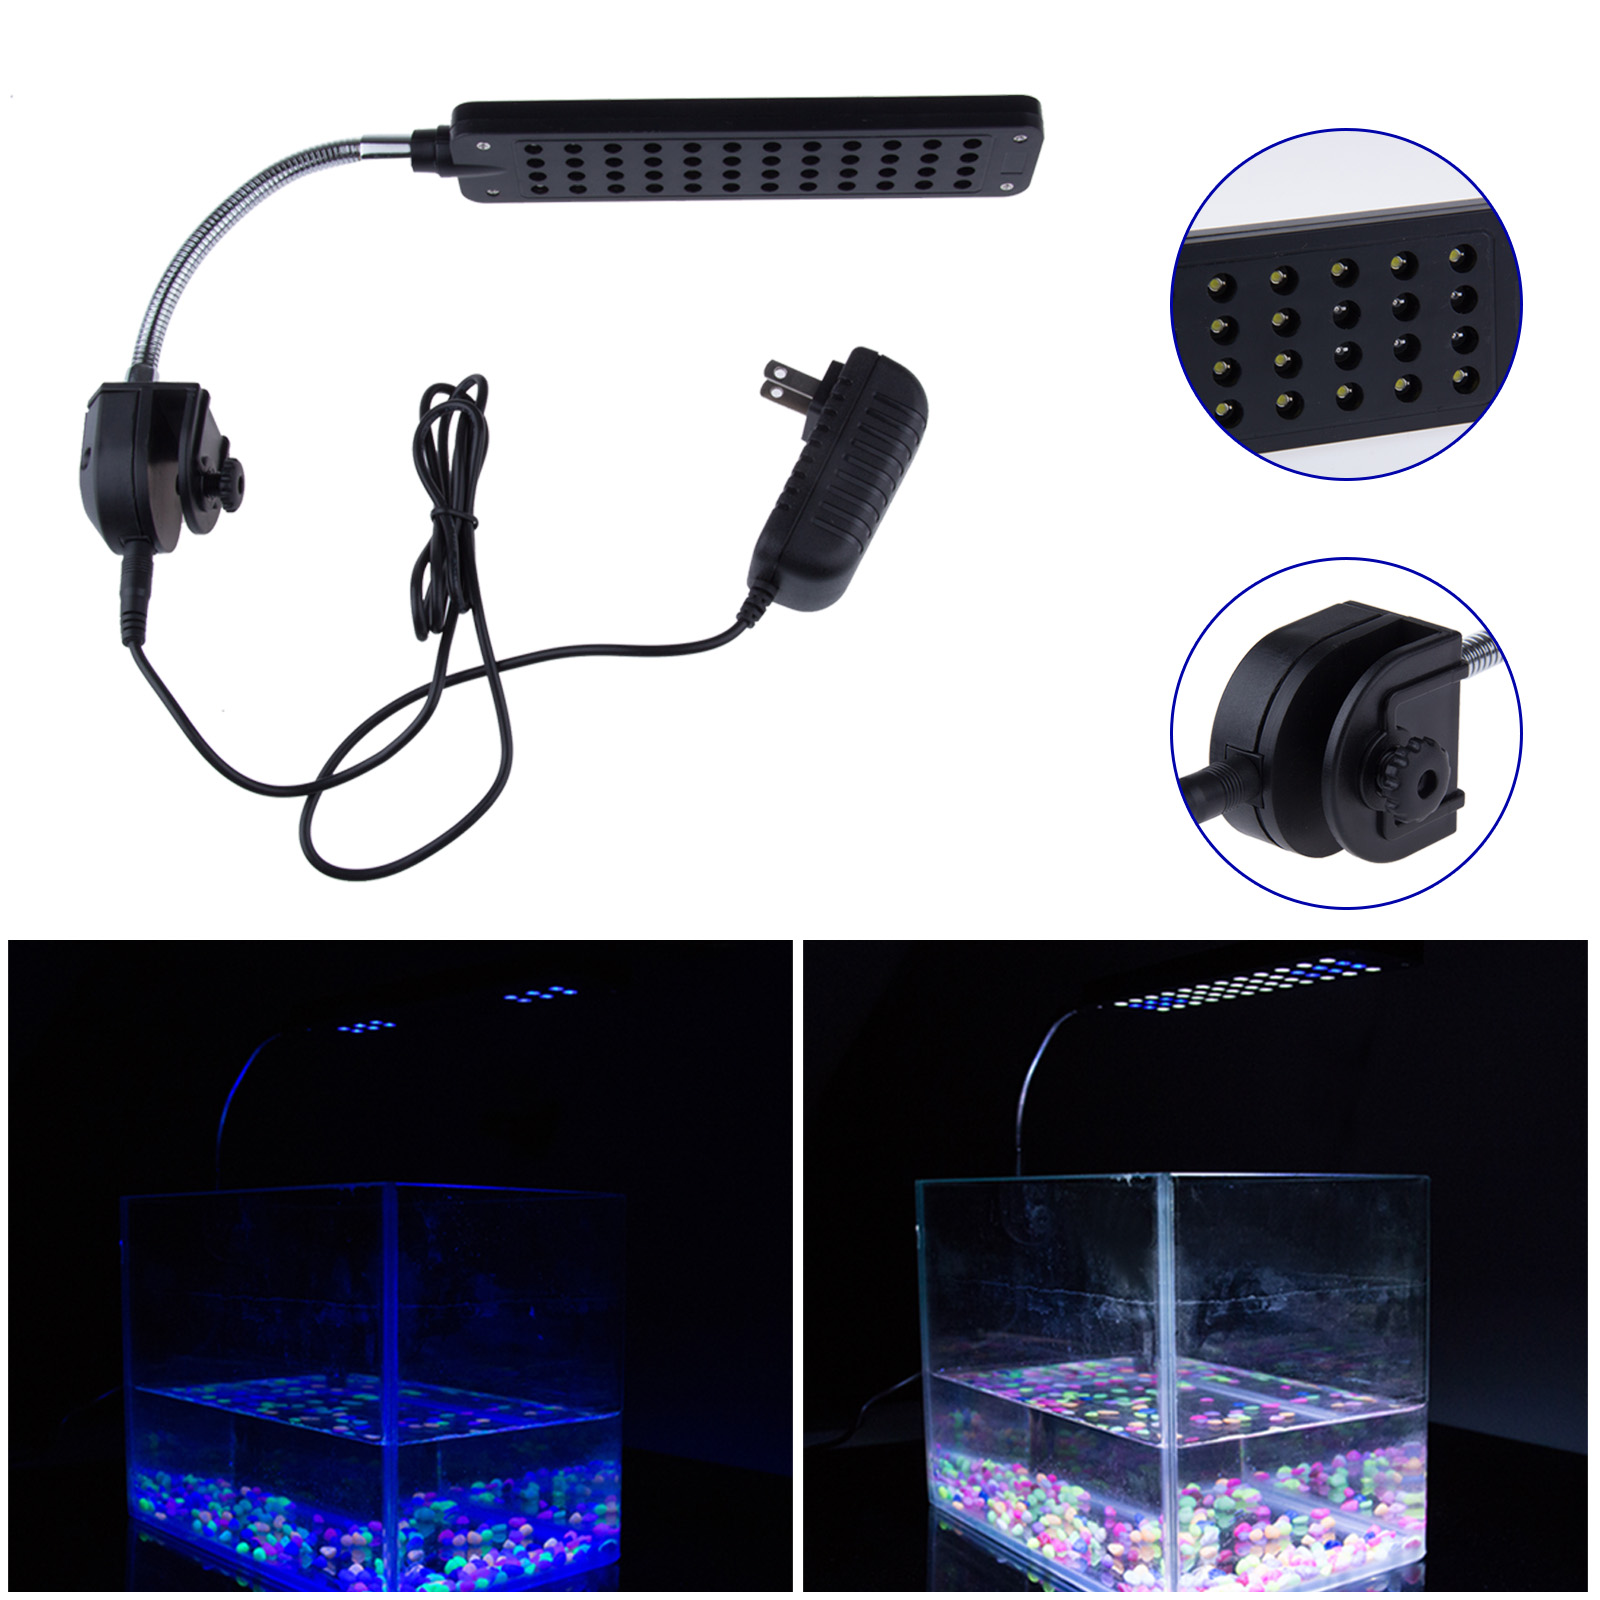 3W 48-LED Aquarium Lamp Fish Tank Clamp Light with 2 Mode Blue and White Light